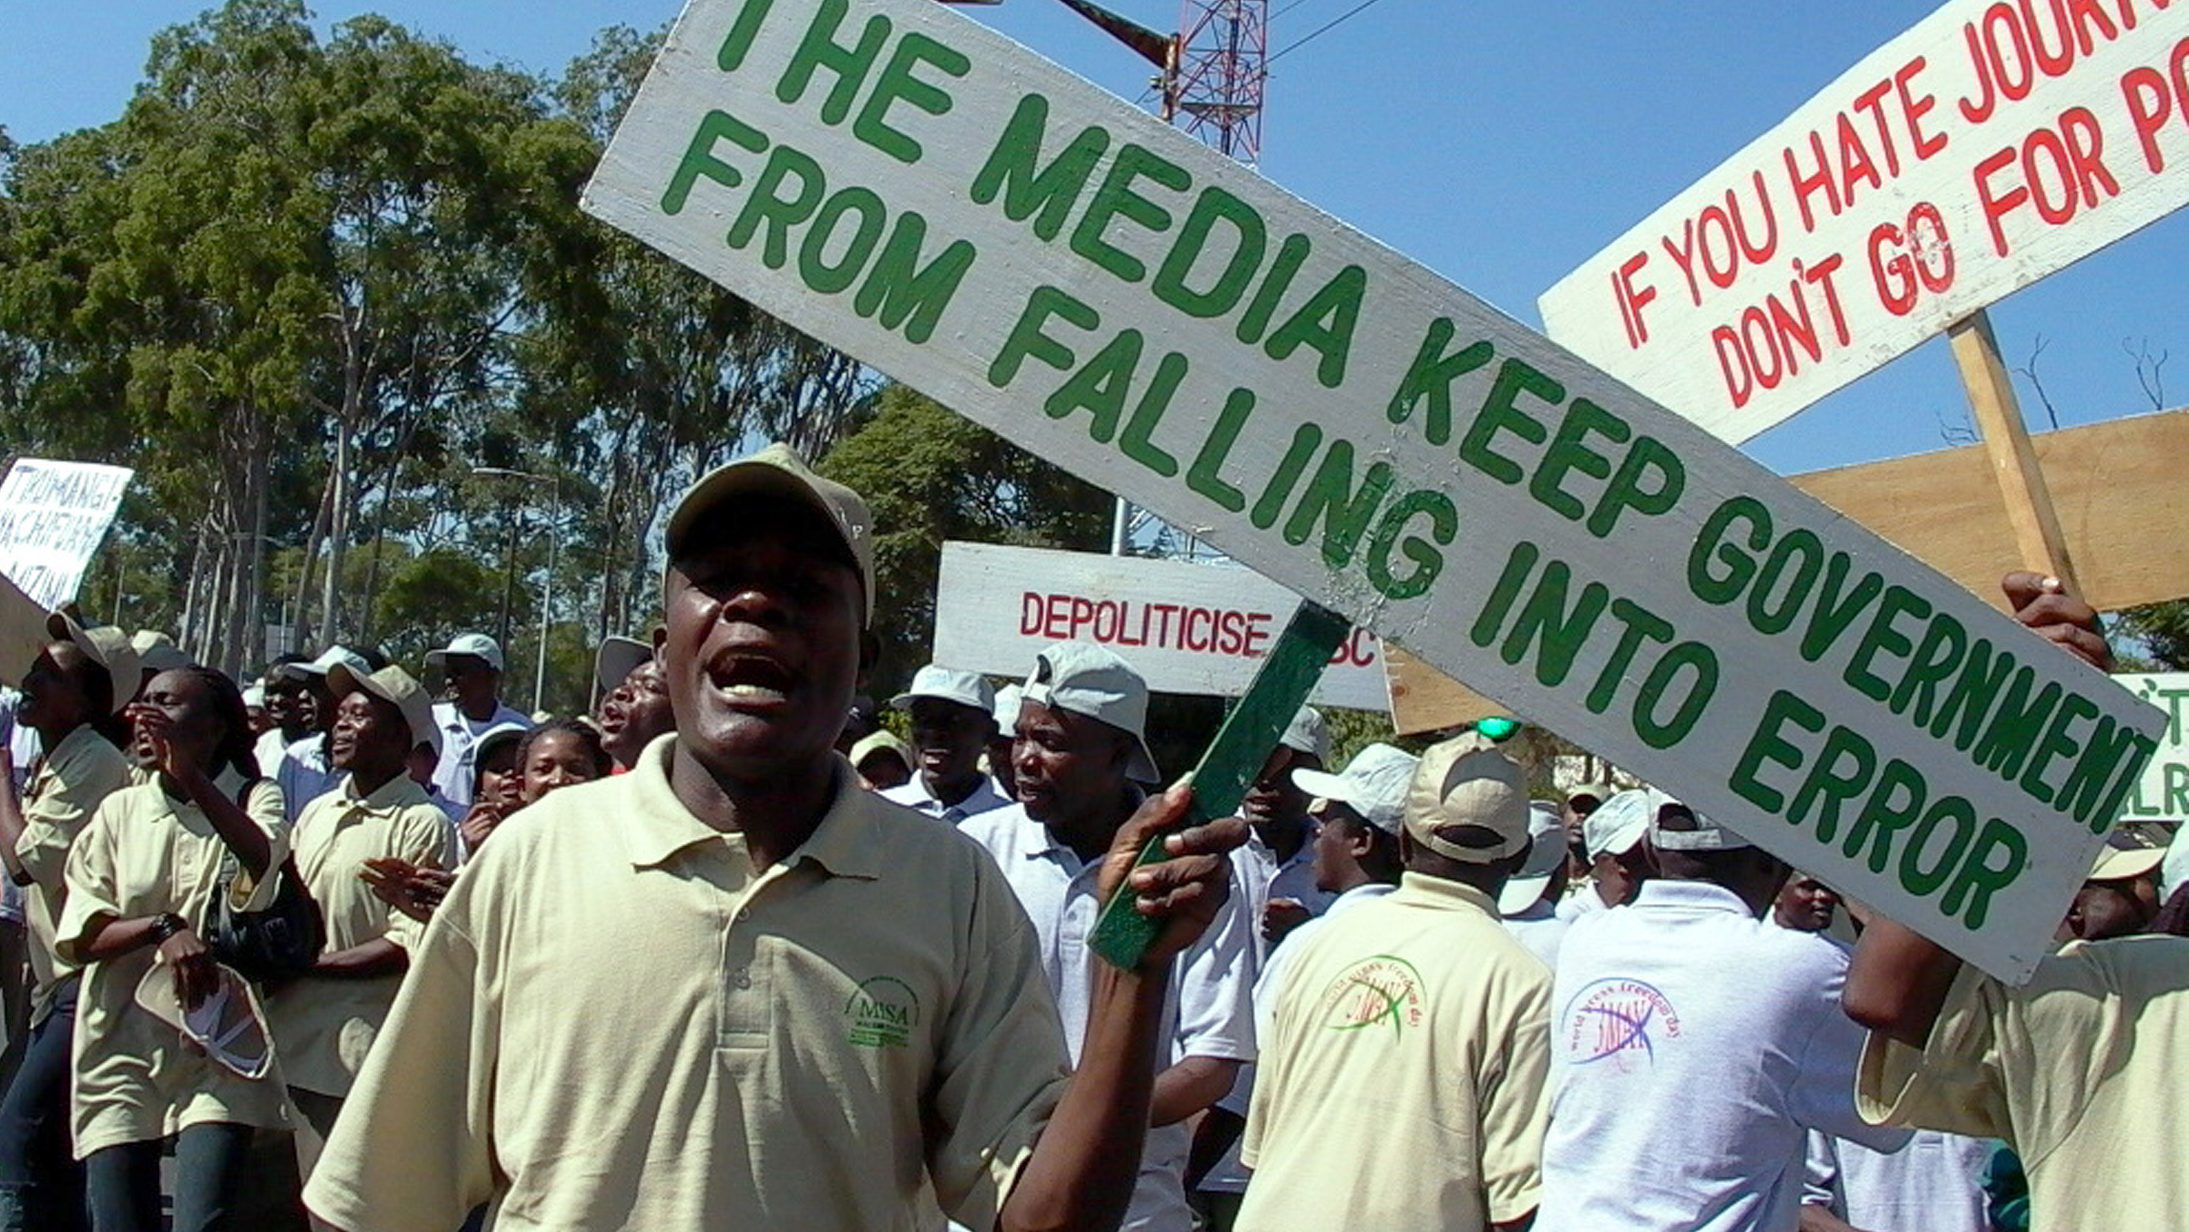 """Malawian journalists chant anti-government slogans and sing songs as they celebrate World Press Freedom Day - three days after it was celebrated around the globe - in the capital Blantyre May 6, 2005. Media groups in Africa hoped to use the day to focus attention on restrictive laws on the continent where most nations have so-called """"insult laws,"""" which forbid the media from any reporting that could be considered derogatory to the leadership. REUTERS/Eldson Chagara  EC/RSS/CCK/DH - RTRAD39"""